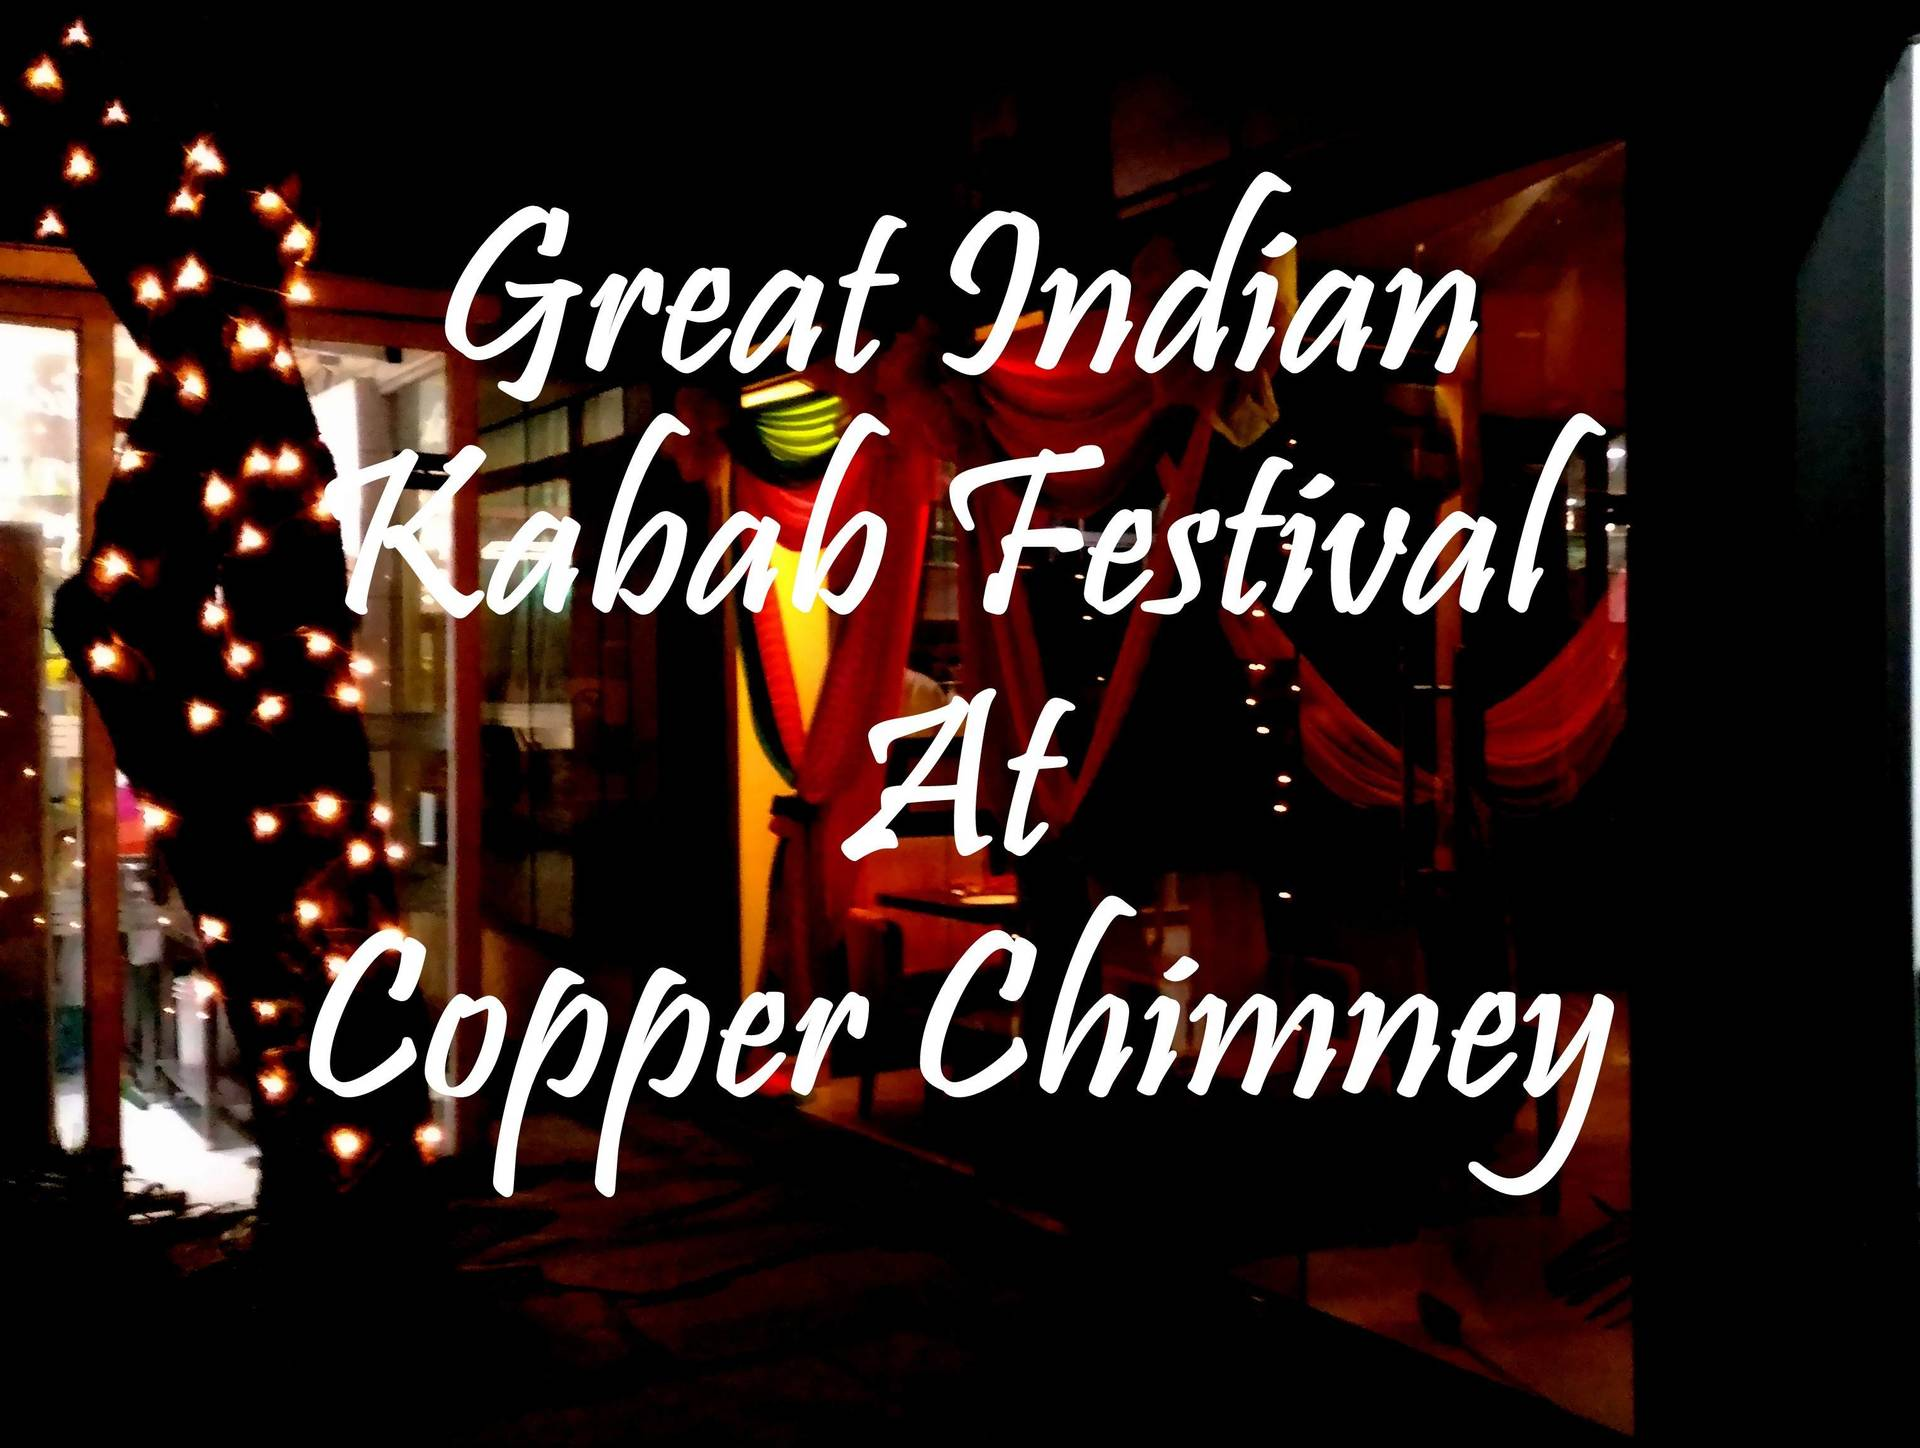 EXPERIENCE: The Great Indian Kabab Festival at Copper Chimney image